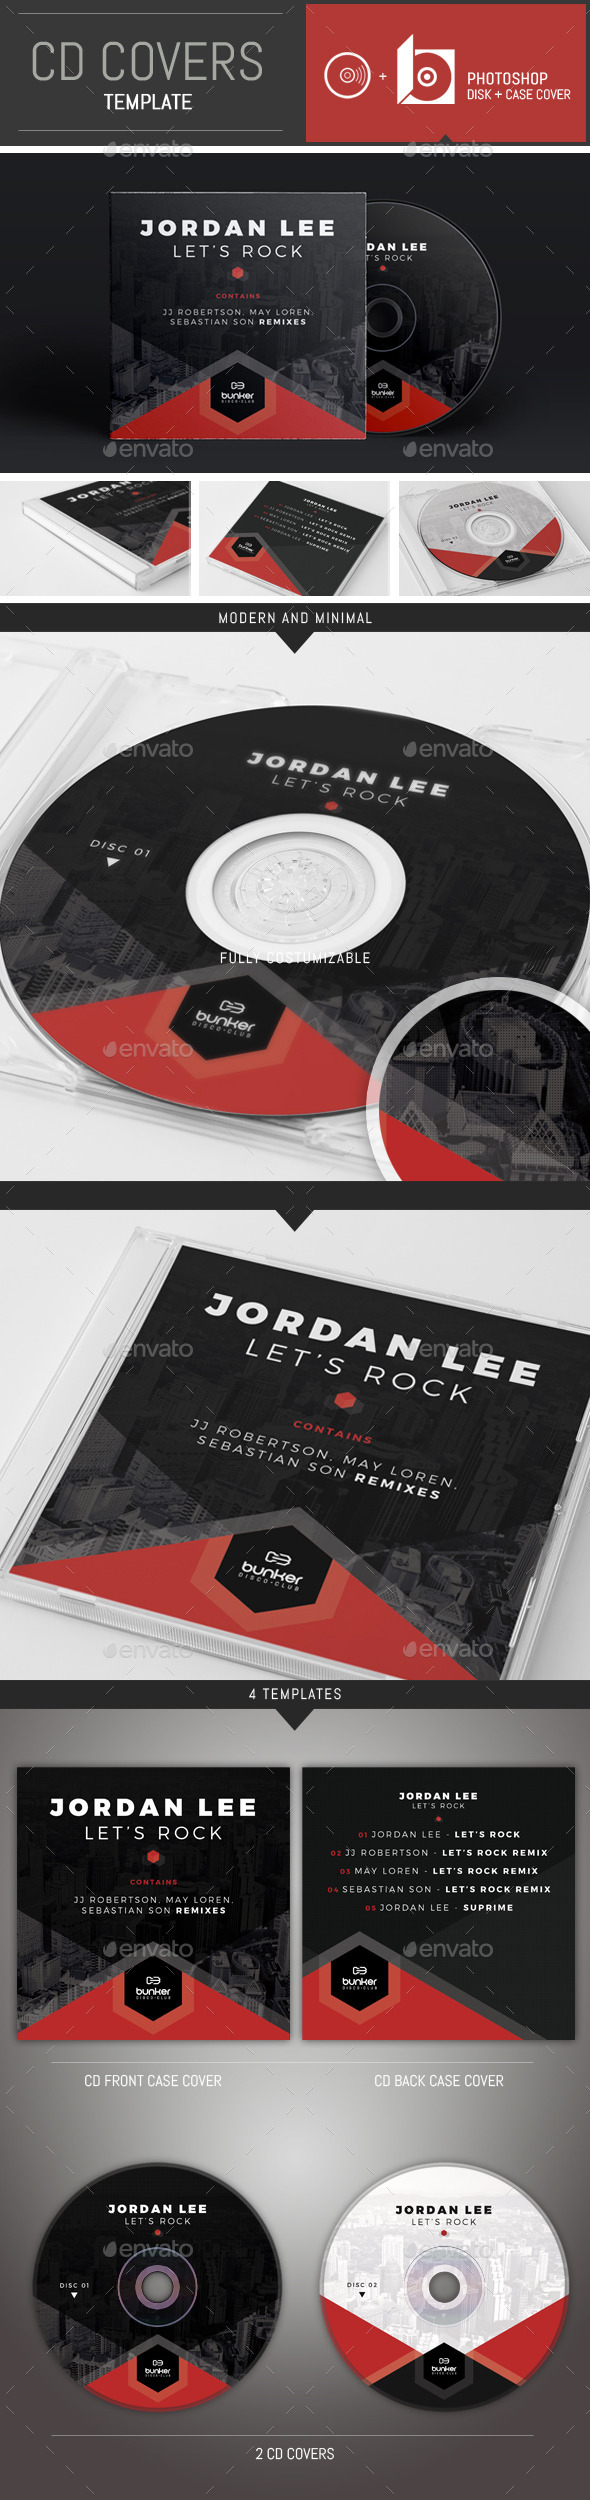 Edm Graphics, Designs & Templates from GraphicRiver